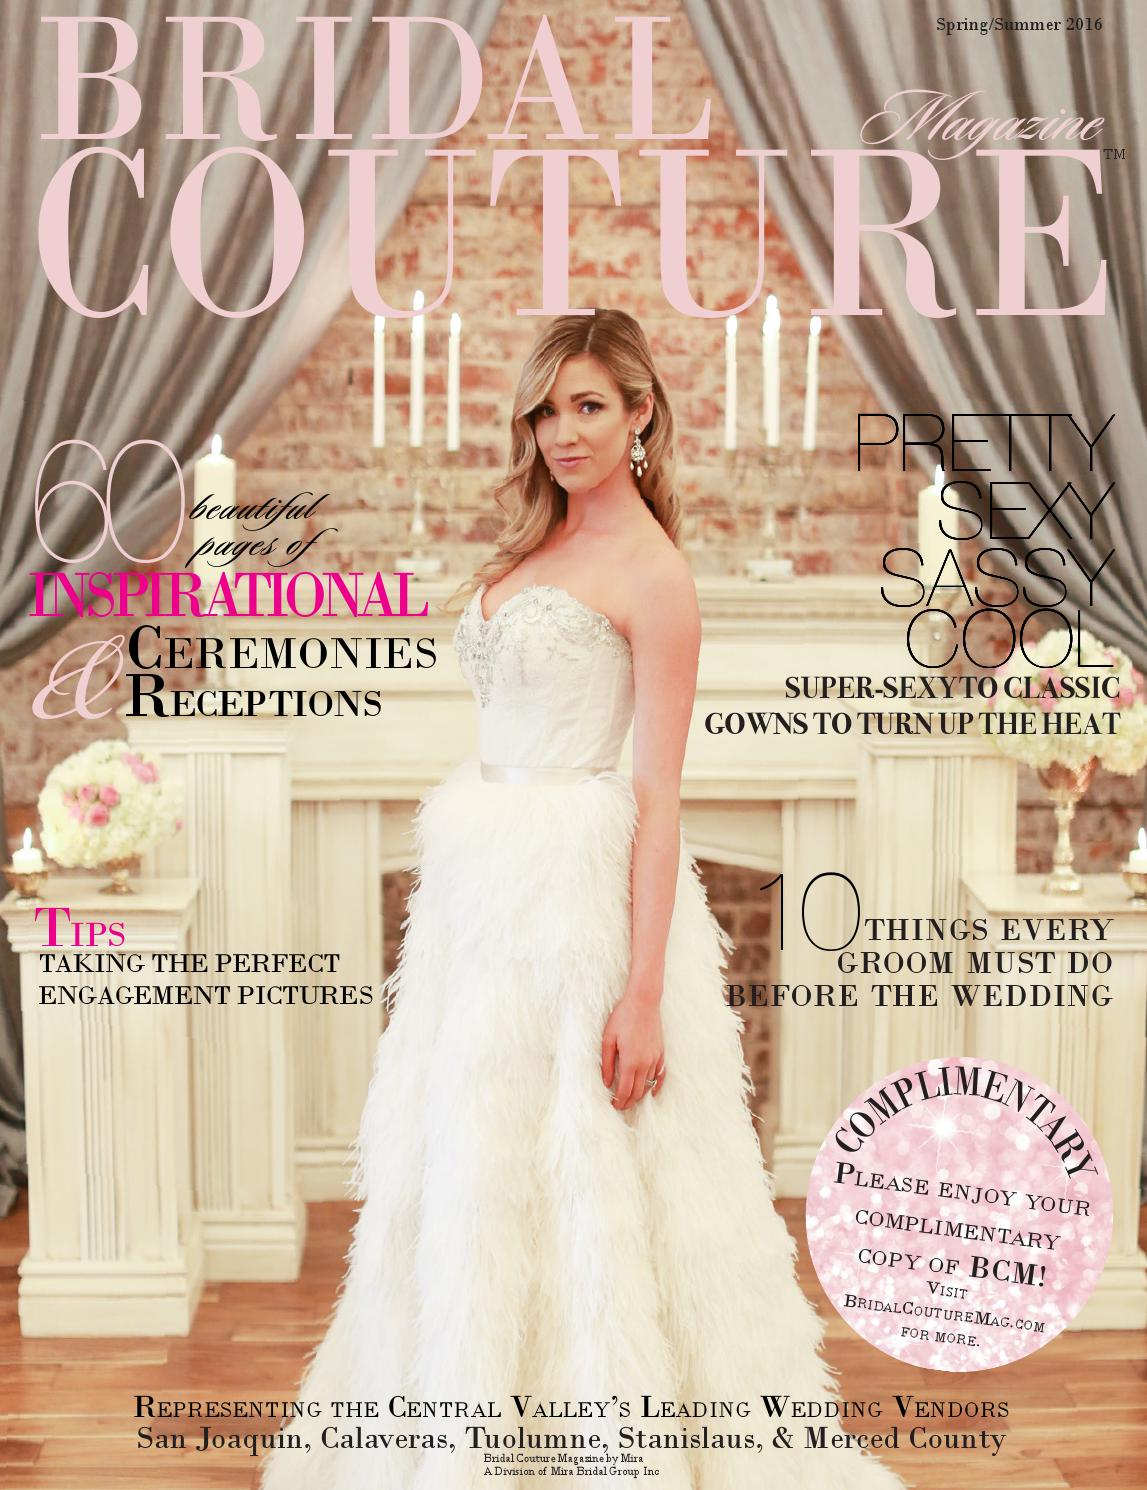 Bridal Couture Magazine Spring Summer 2016 By